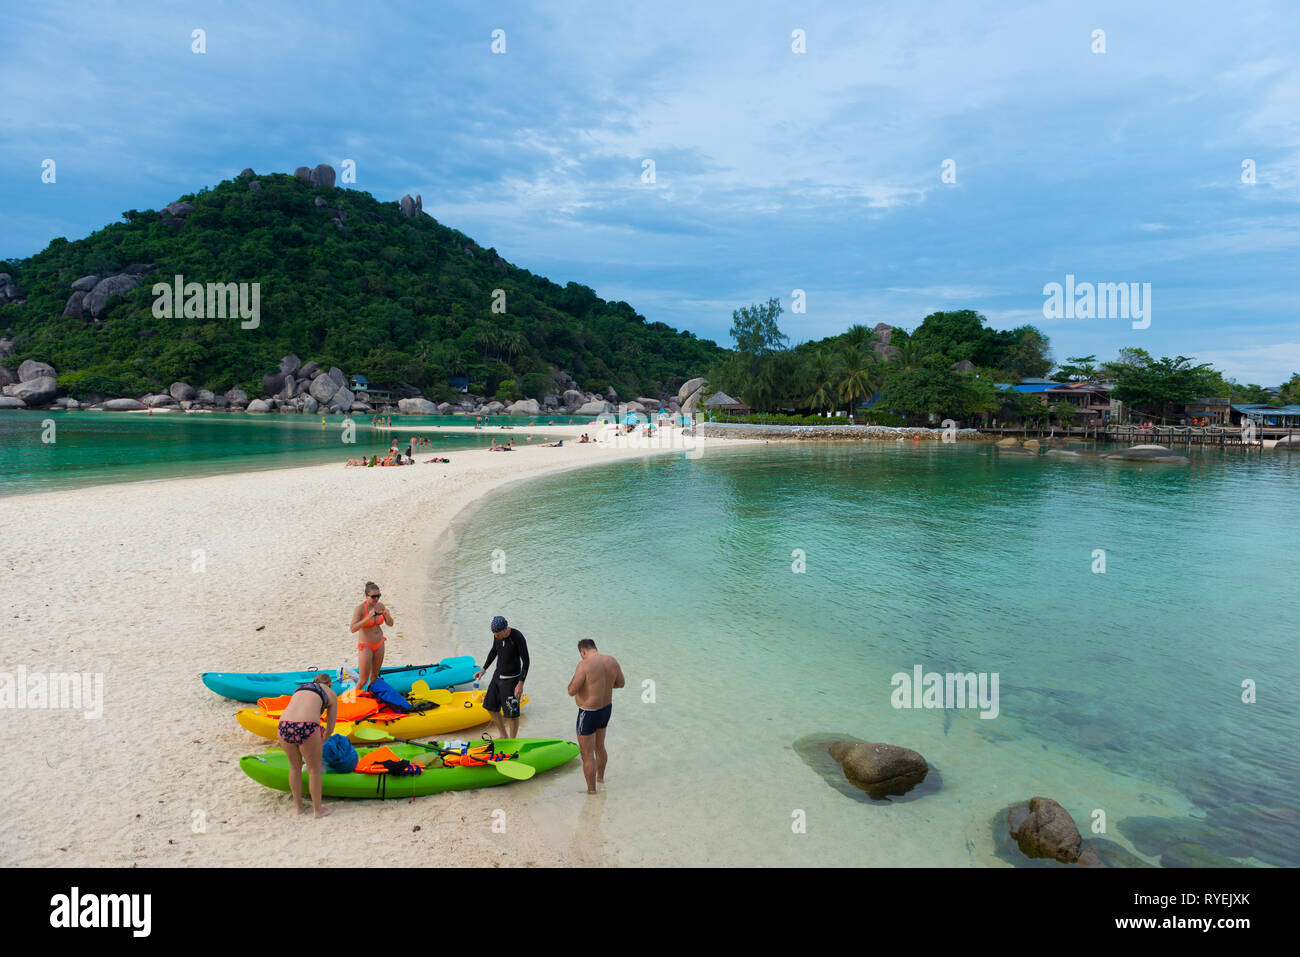 People with kayaks on Nang Yuan island beach, Ko Tao island, Thailand - Stock Image